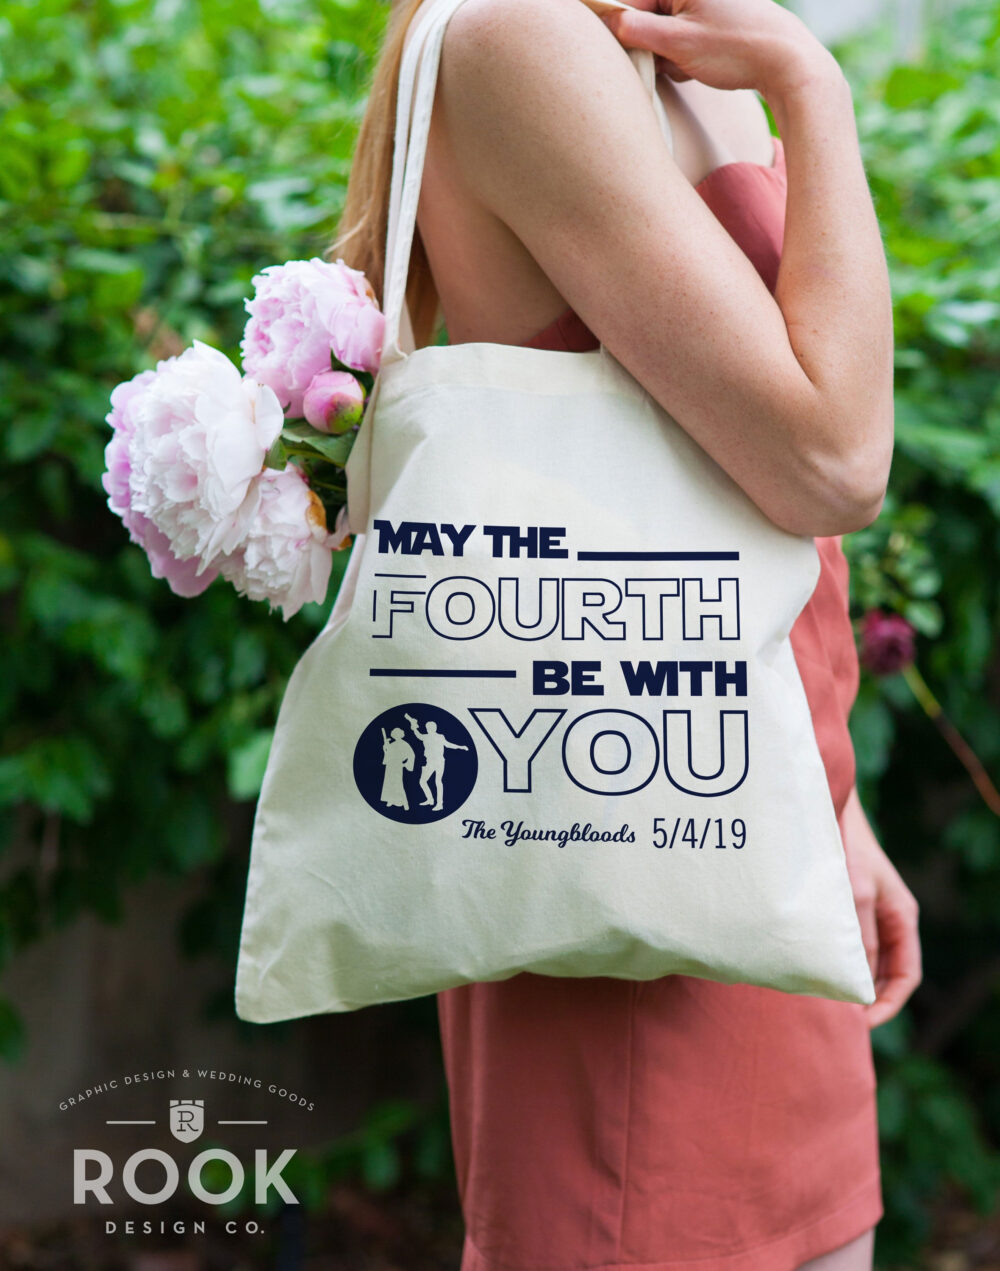 May The Fourth Be With You Tote Bags, Funny Star Wars Wedding Gift, Princess Leia Tote, Hans Solo Bag, 4Th Wedding, Totes